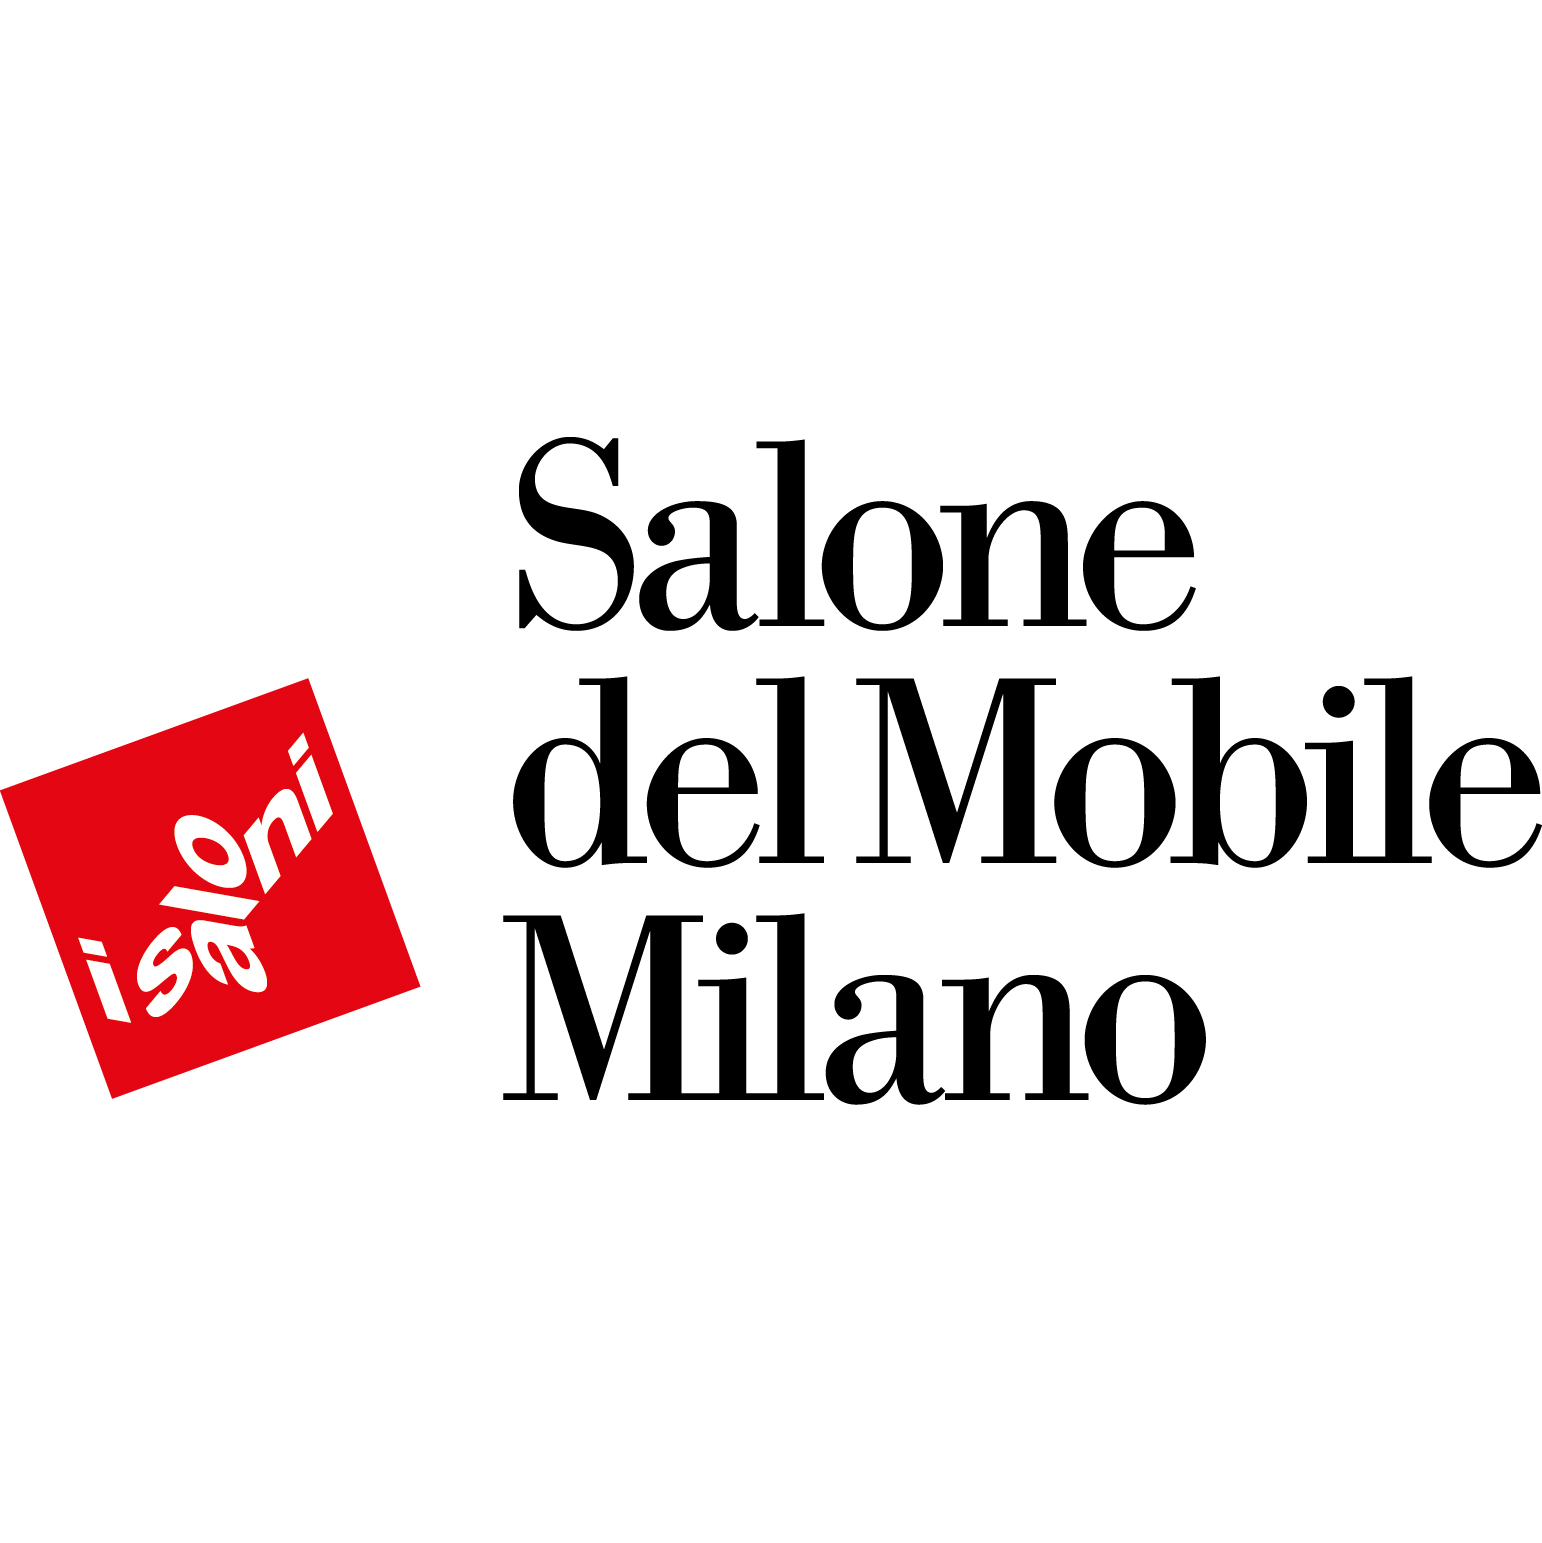 Salone del mobile 2017 bl station for Salone del mobile statale milano